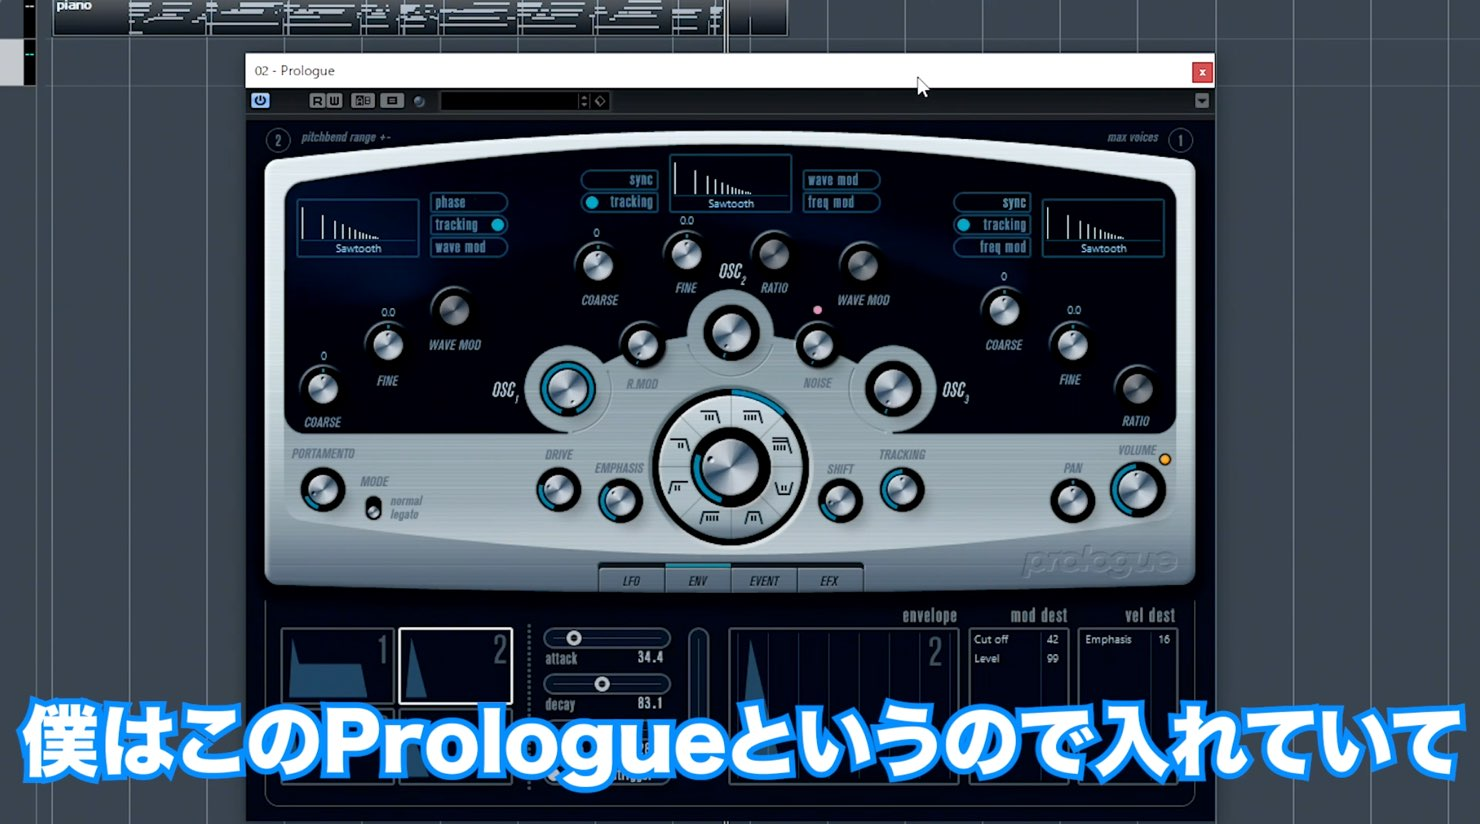 Yusuke-Shirato-Tips-3-Prologue-Cubase